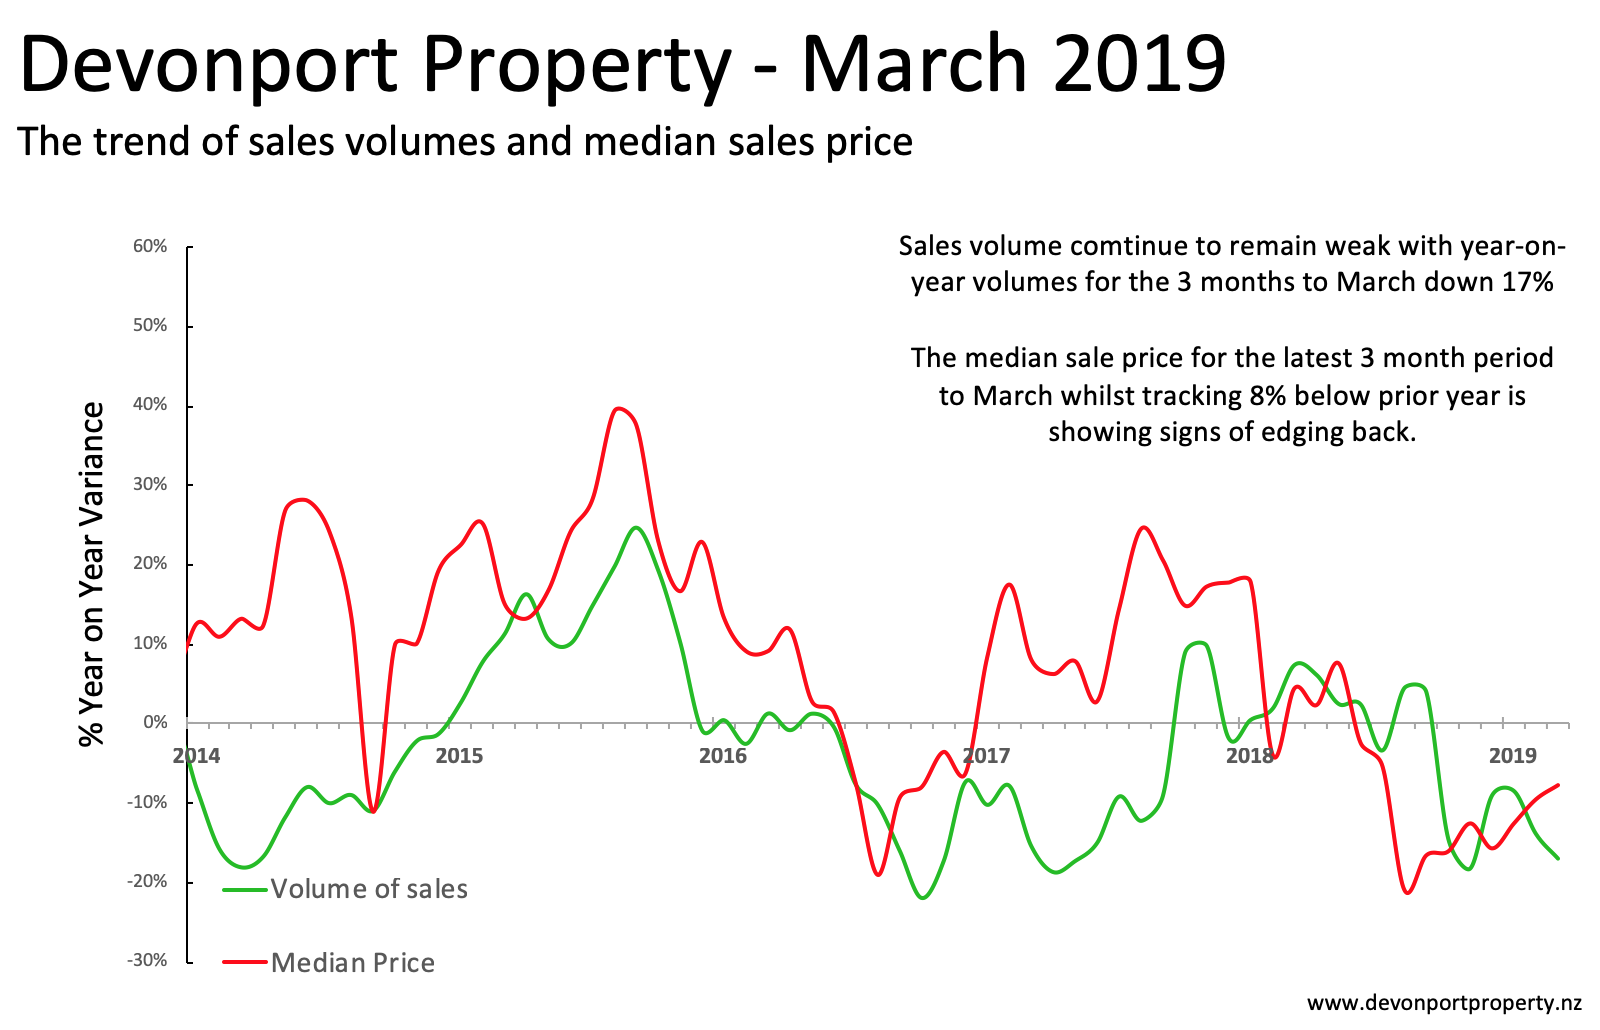 Devonport Property - Property sales price var Mar 2019 3M.png